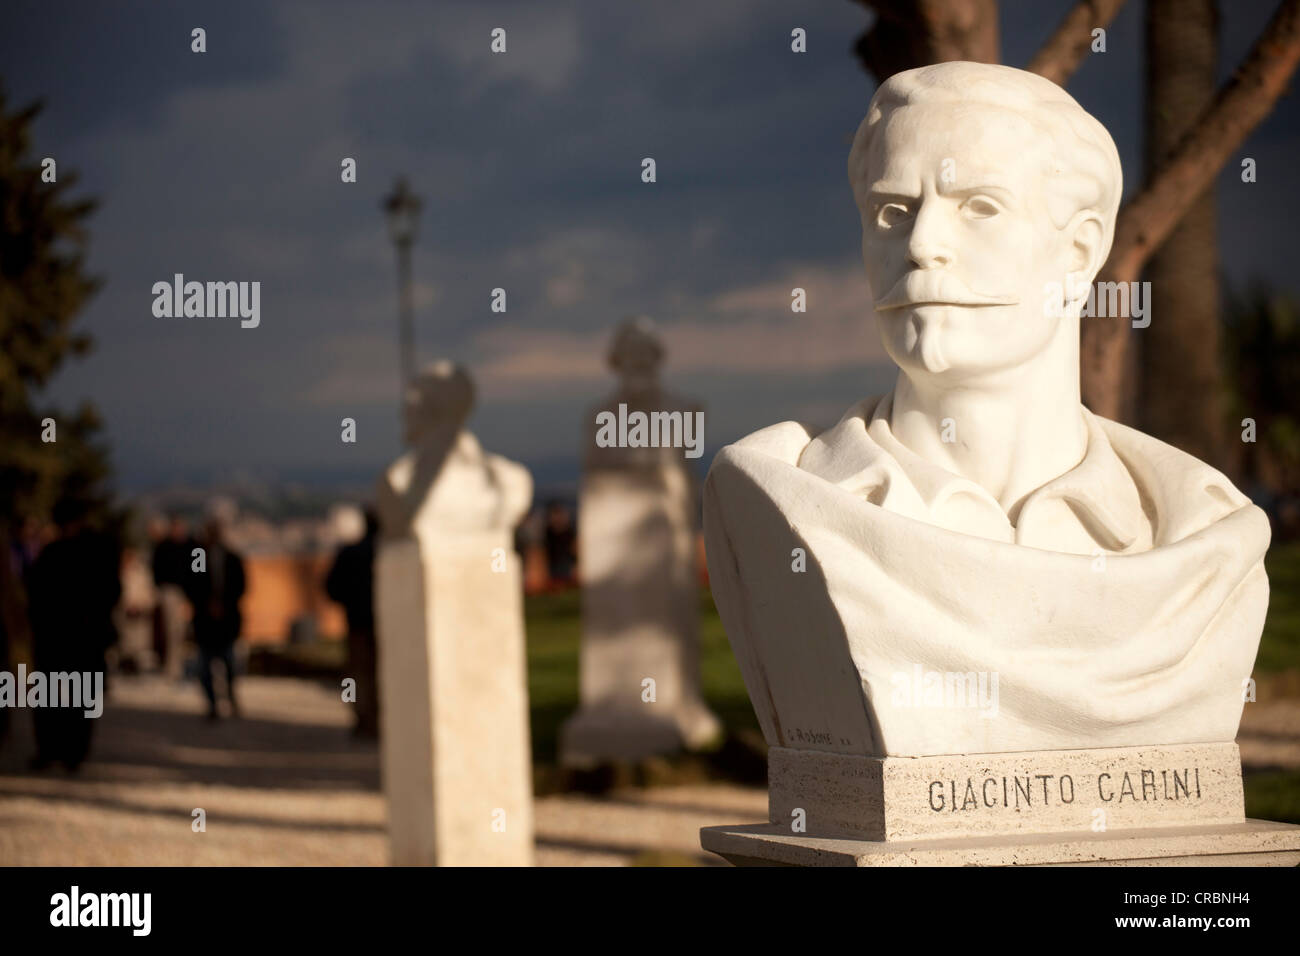 Bust of the politician, Giacinto Carini, in the park on the hill of Gianicolo, Rome, Italy, Europe - Stock Image